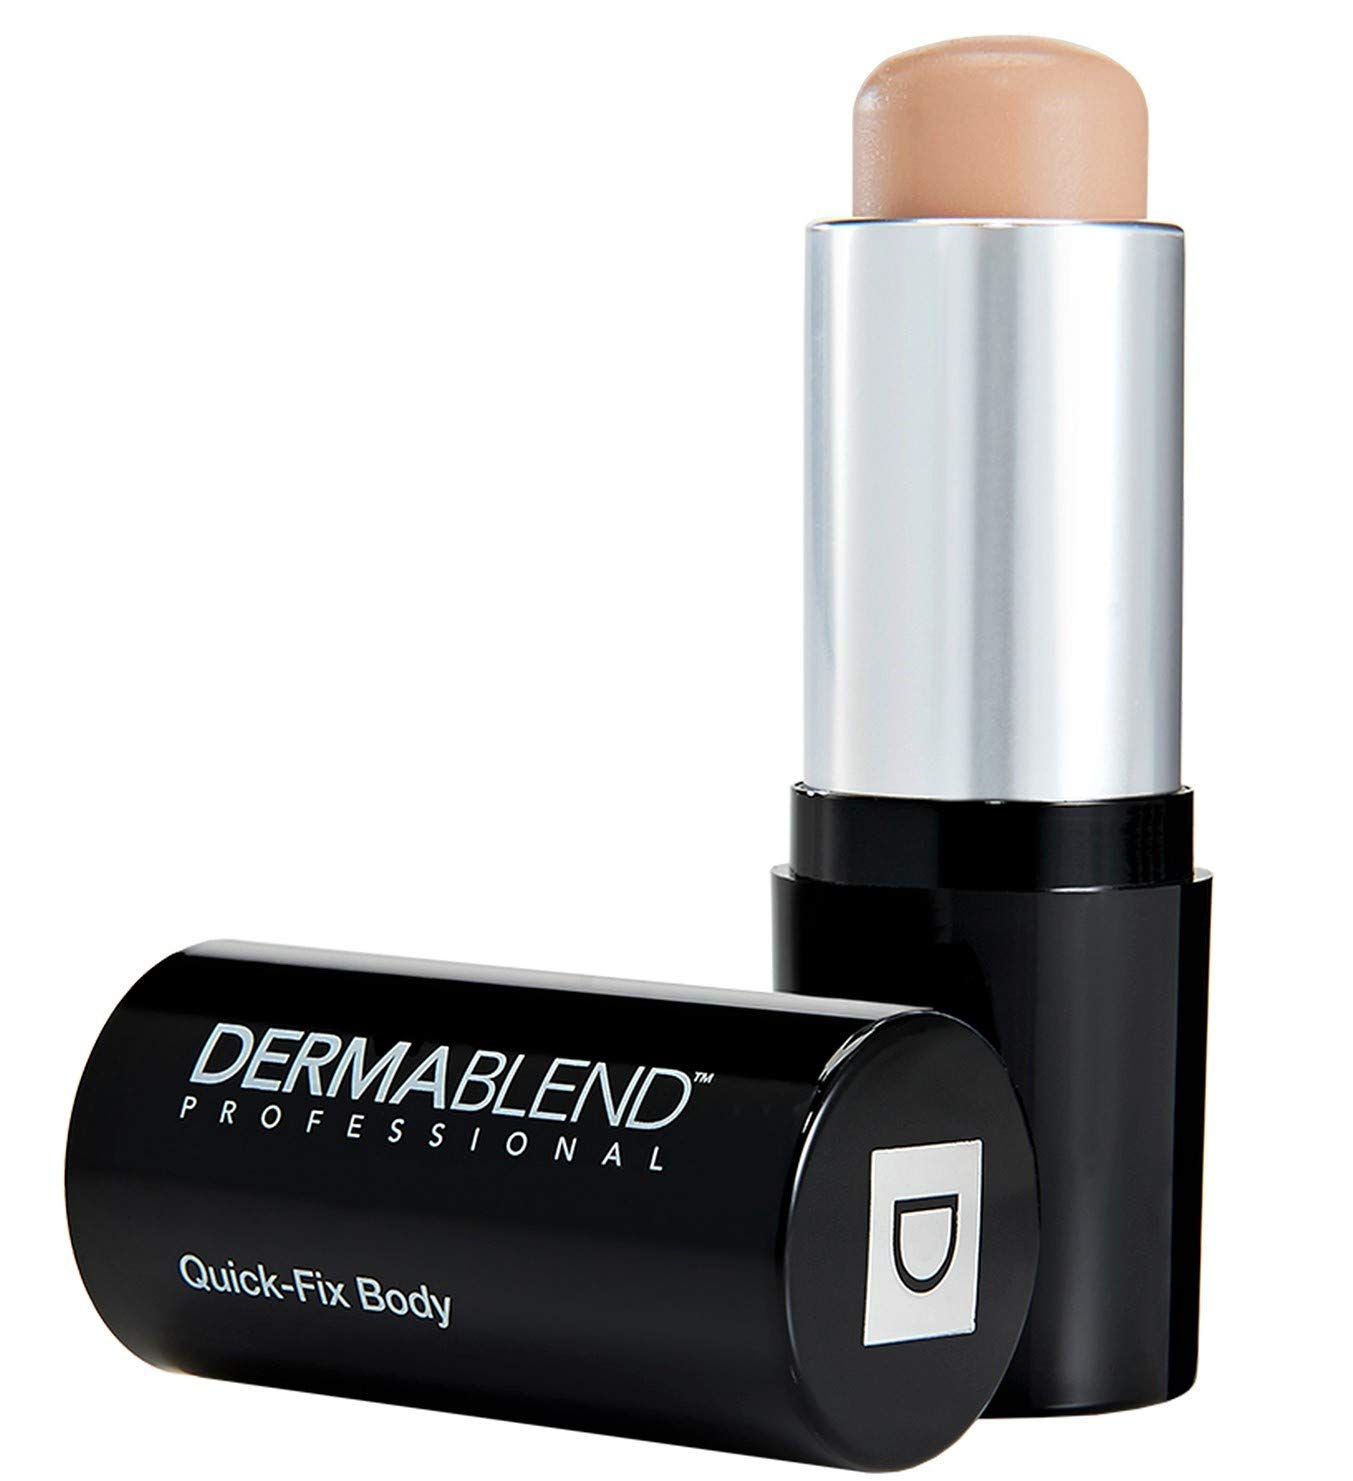 Dermablend Quick-Fix Body Makeup Full Coverage Foundation Stick, Water-Resistant Body Concealer for Imperfections & Tattoos